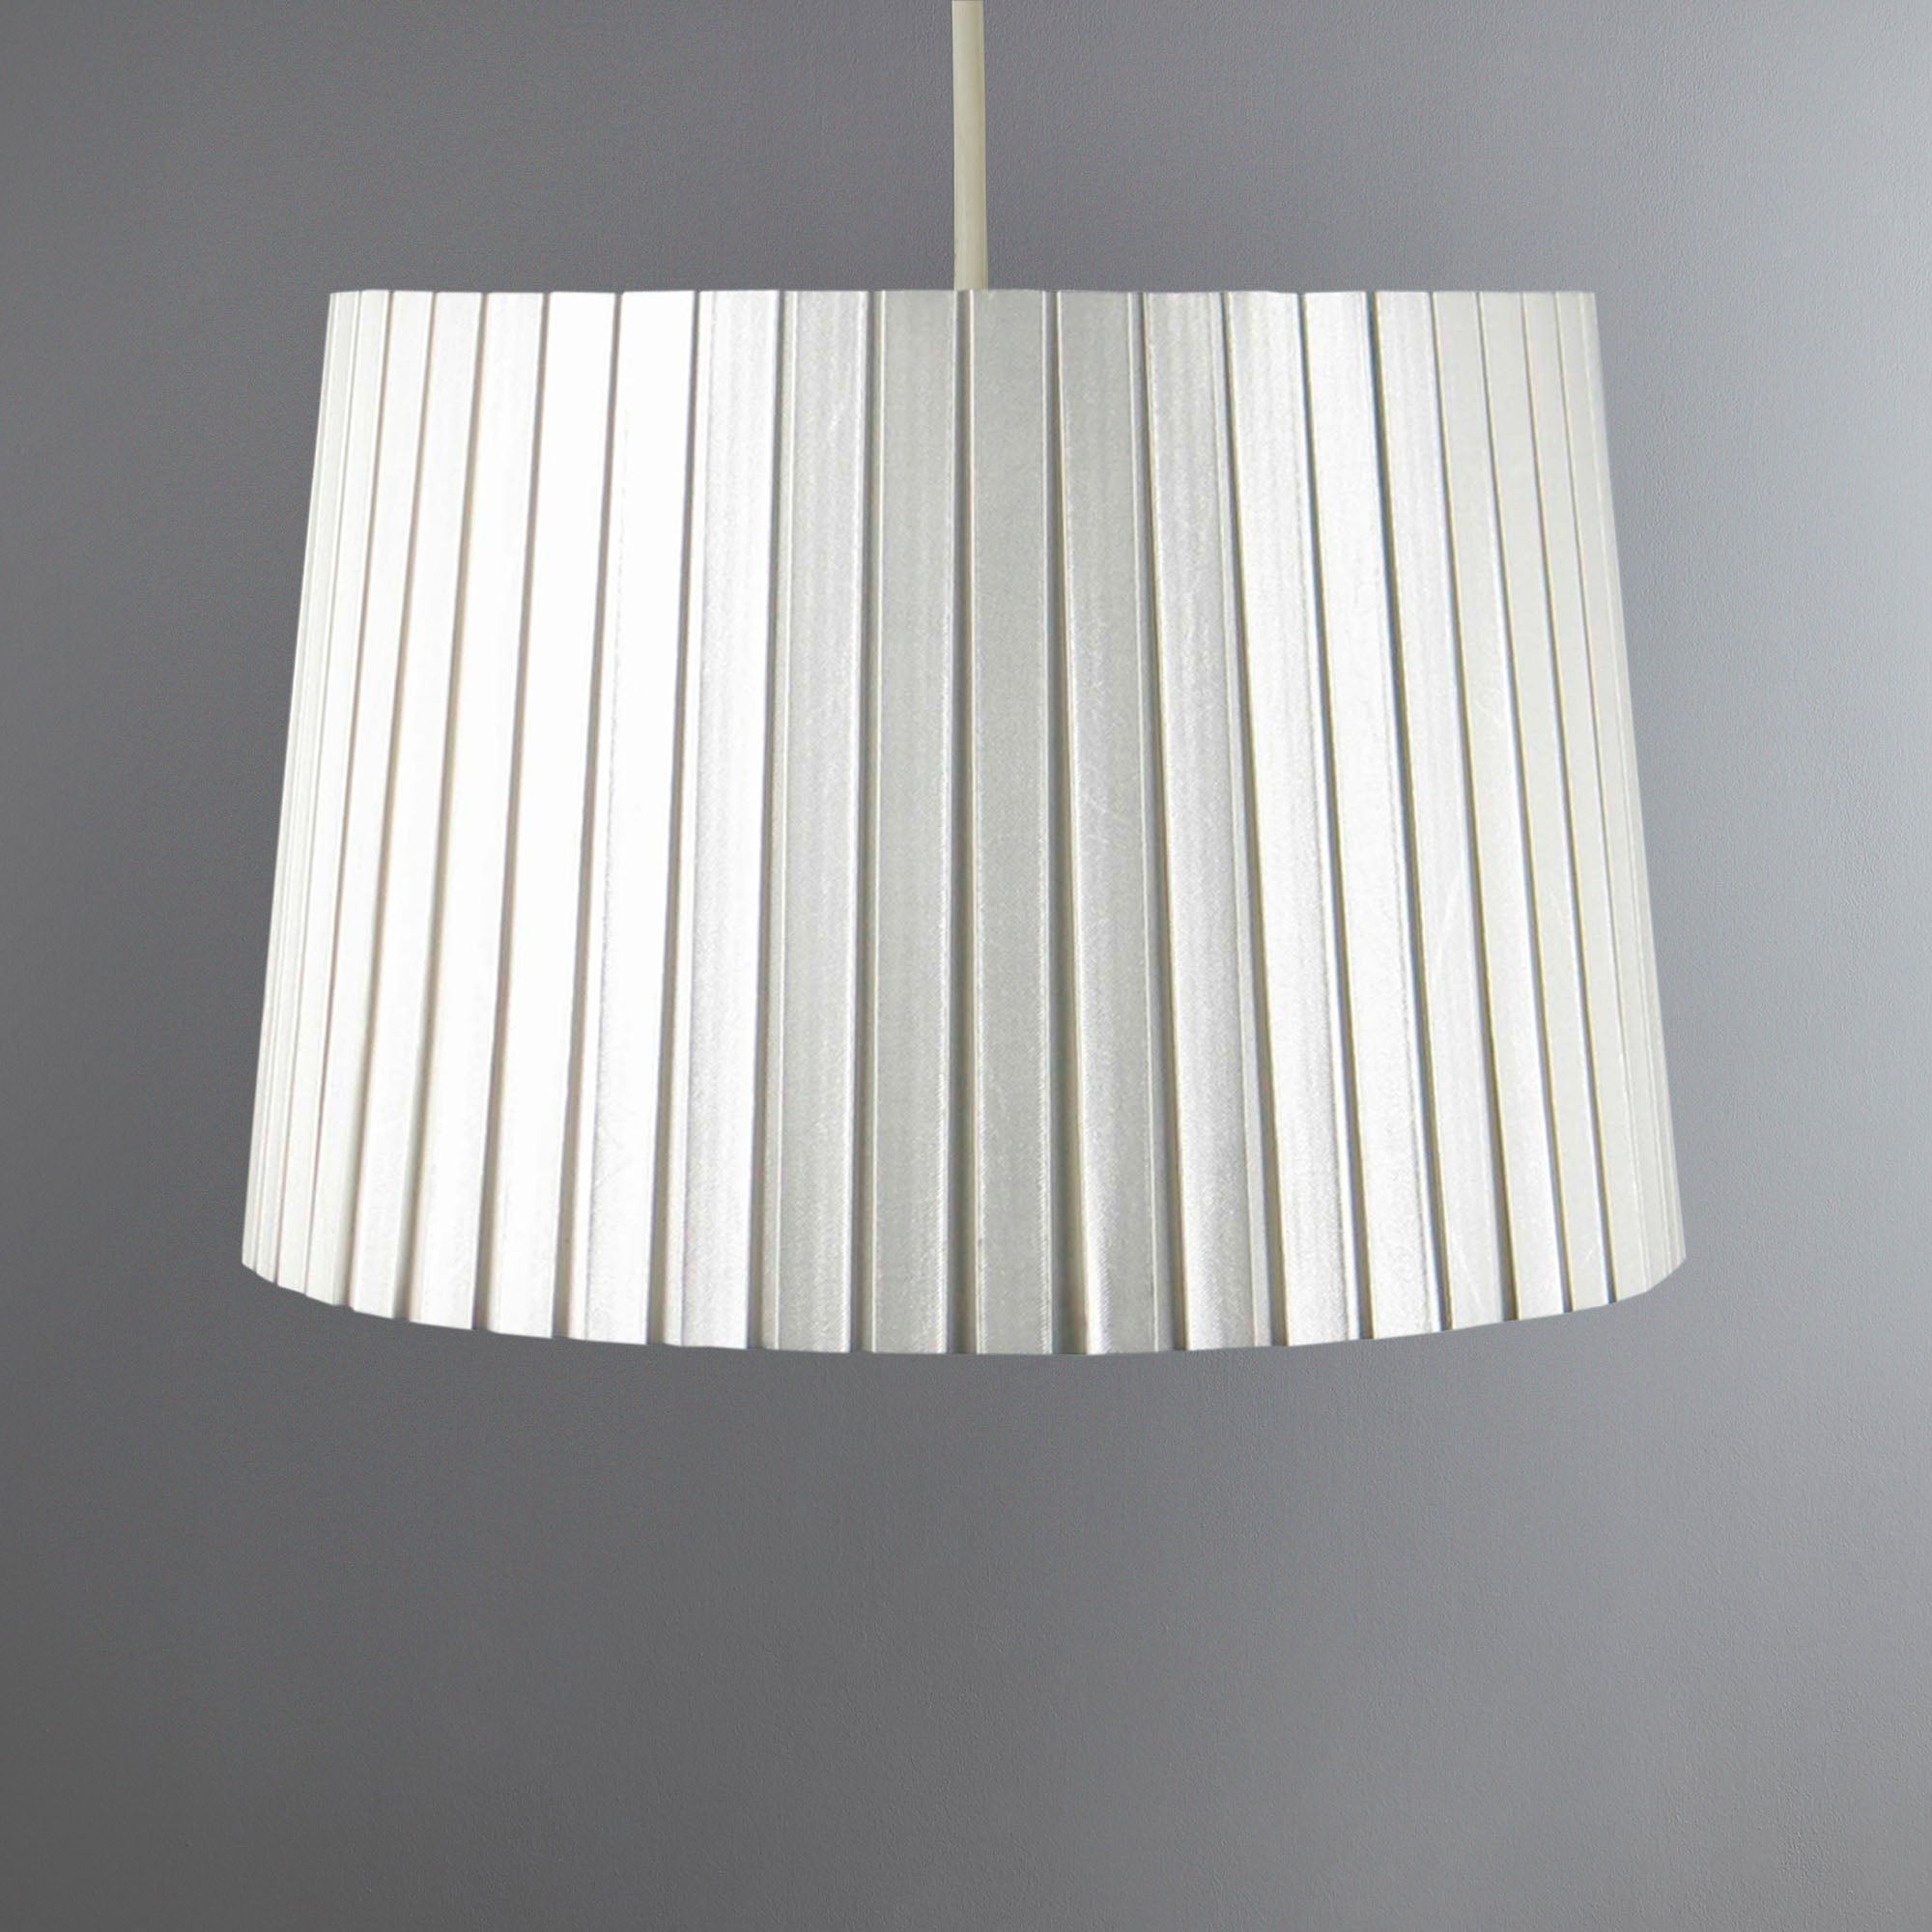 Knife Edge Pleat Pendant Shade